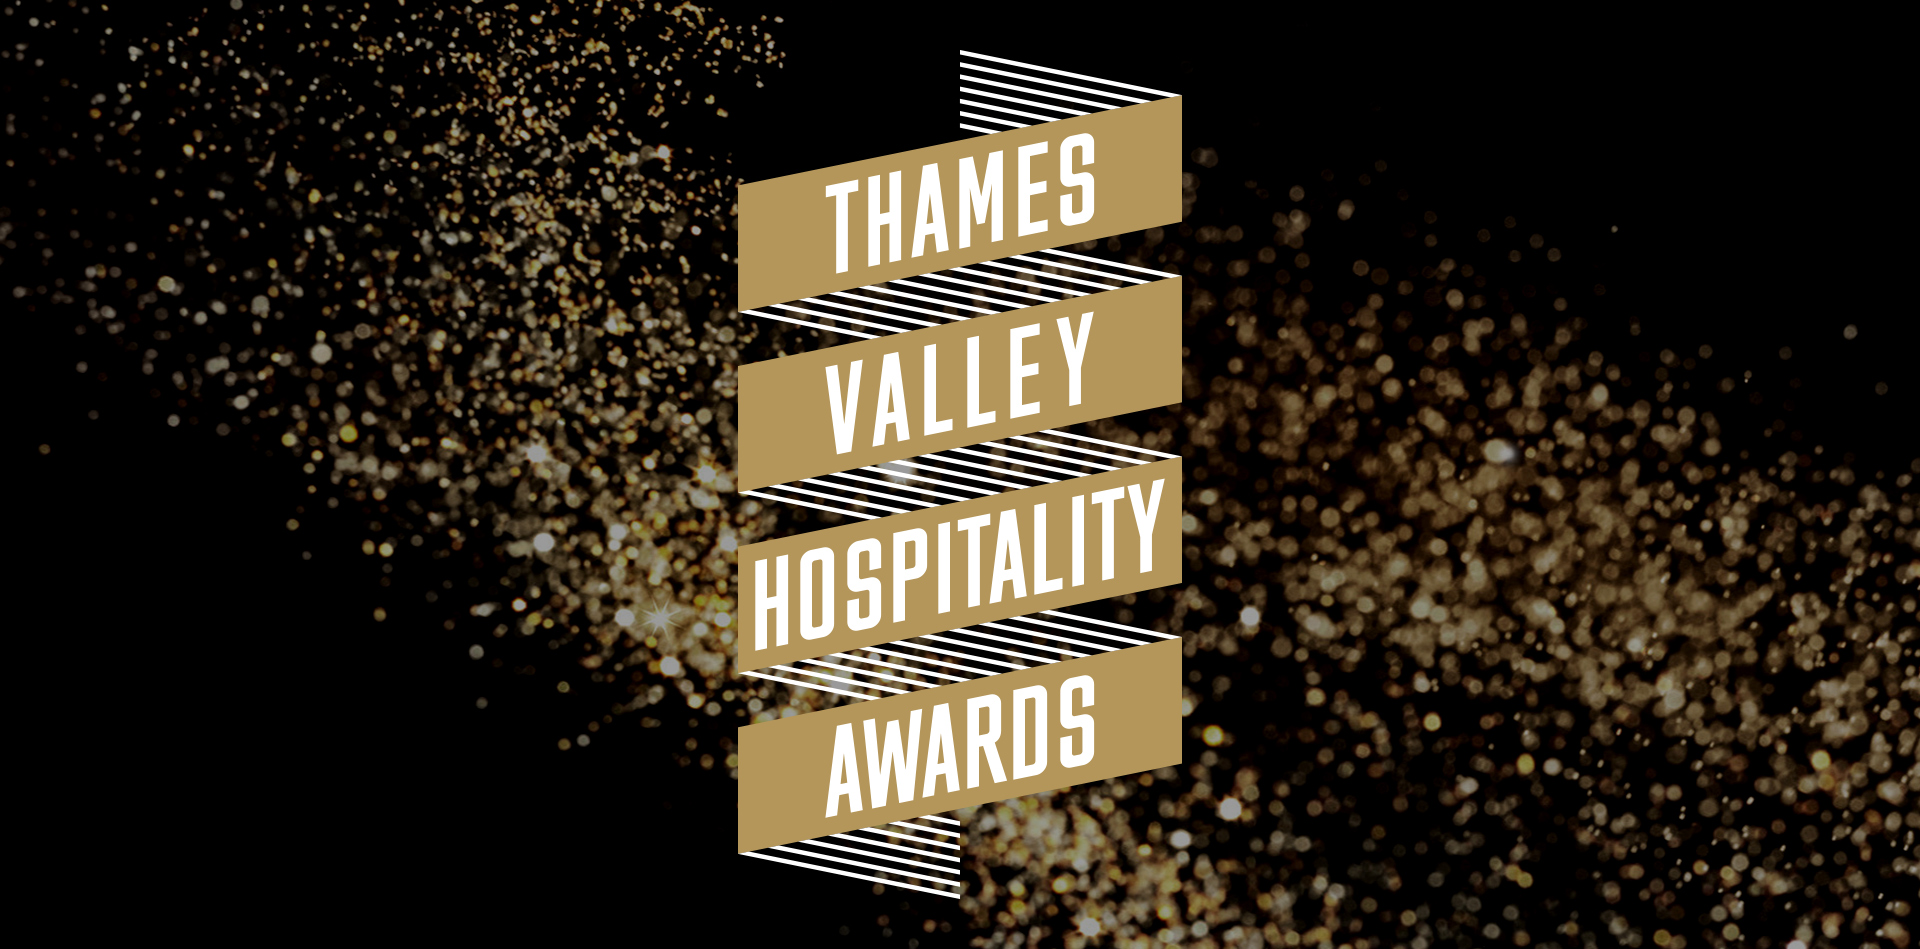 Thames Valley Hospitality Awards Logo